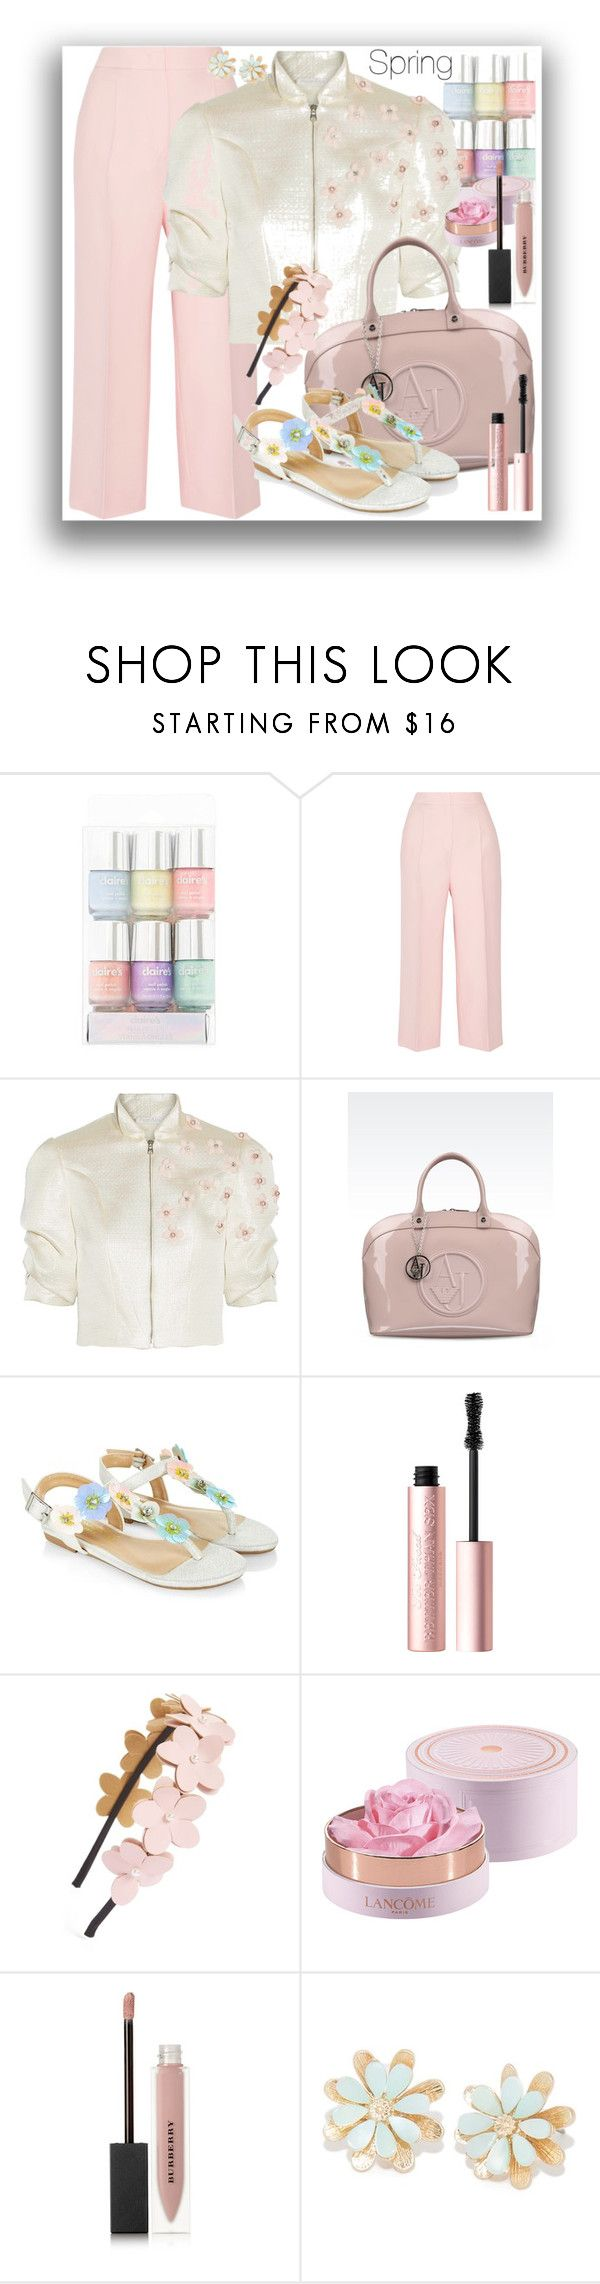 """""""Spring"""" by marionmeyer ❤ liked on Polyvore featuring Fendi, Reem Acra, Armani Jeans, Monsoon, Too Faced Cosmetics, Cara, Burberry and Spring"""